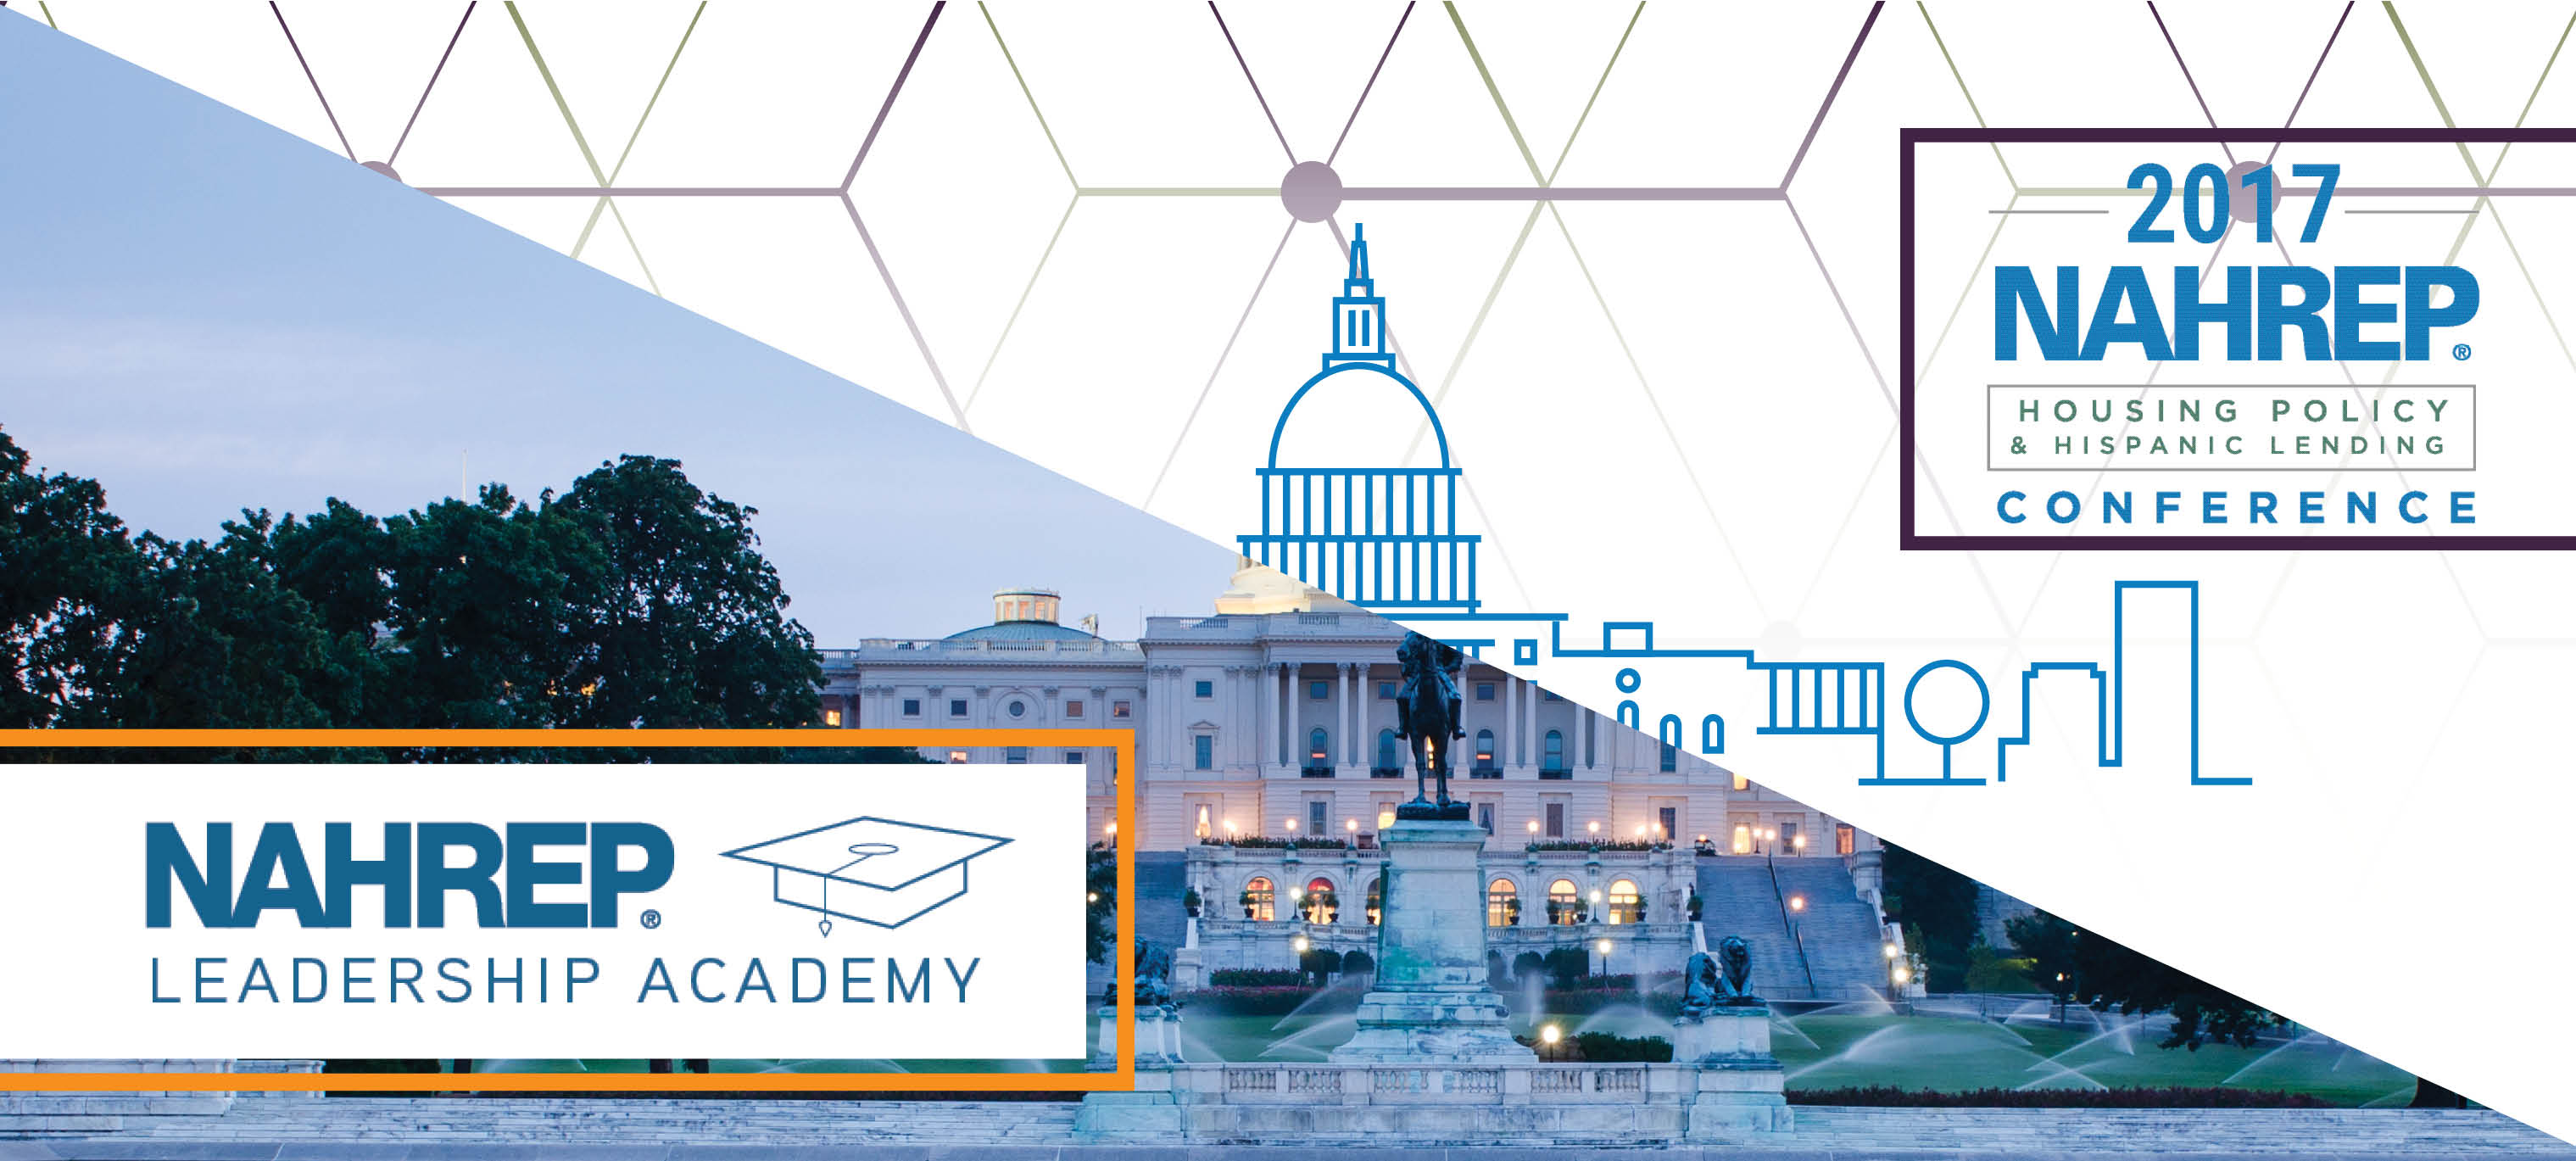 2017 NAHREP Housing Policy & Hispanic Lending Conference and Leadership Academy